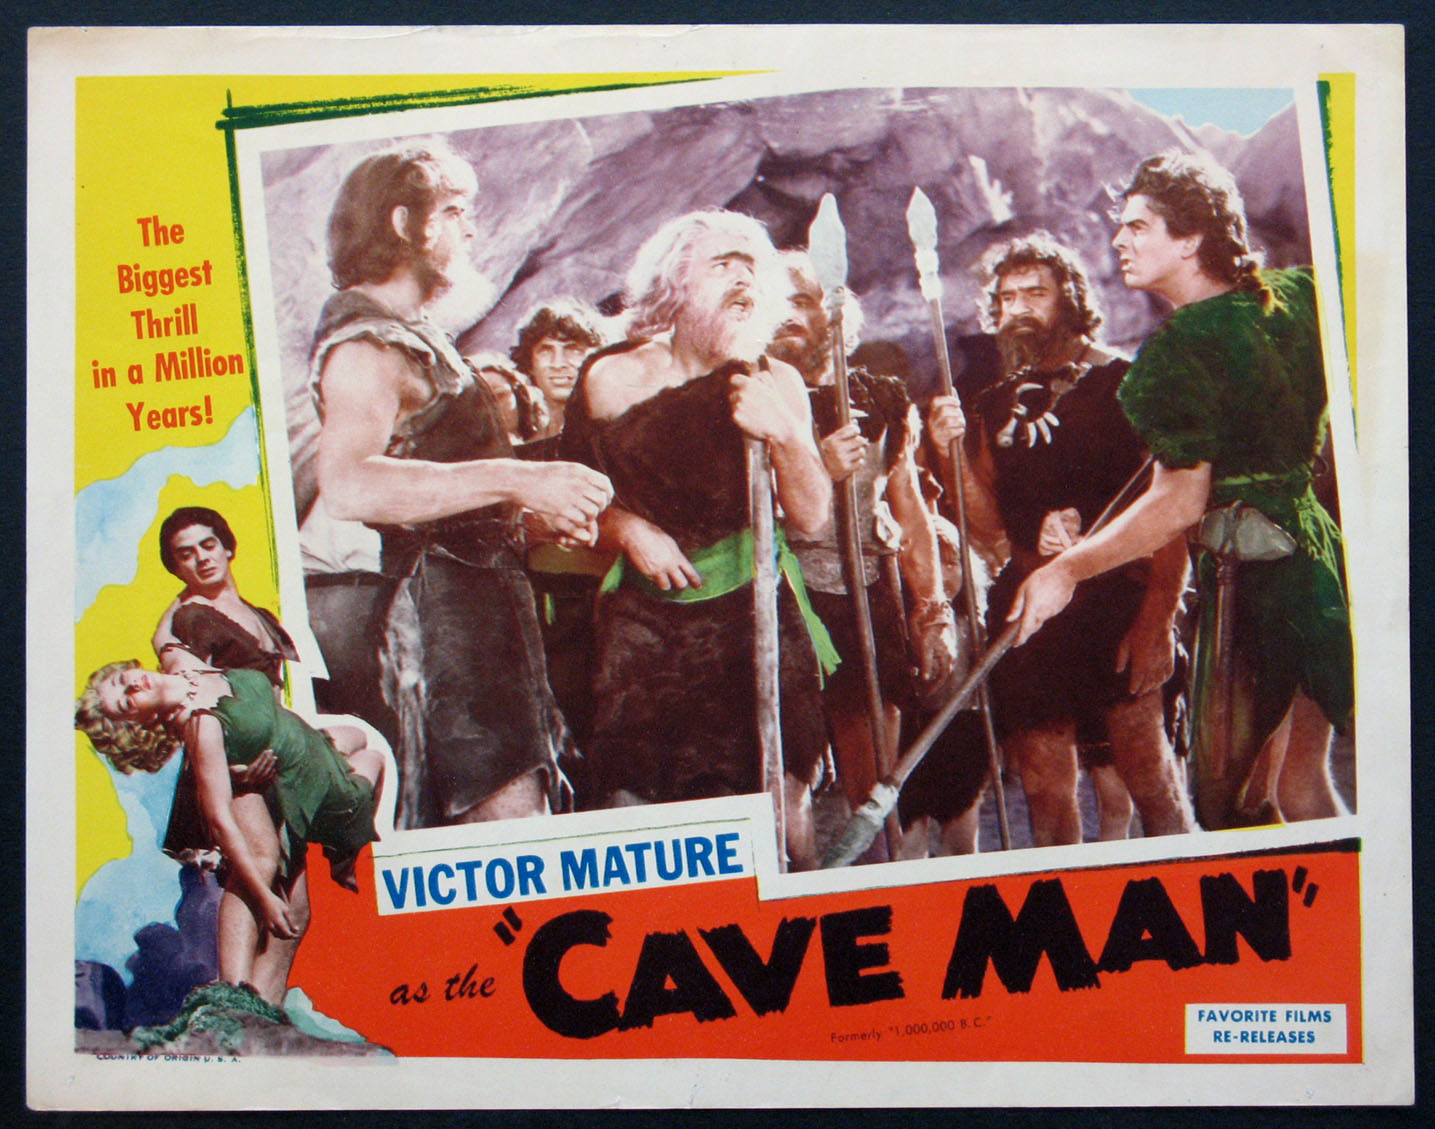 ONE MILLION B.C. (CAVE MAN) @ FilmPosters.com